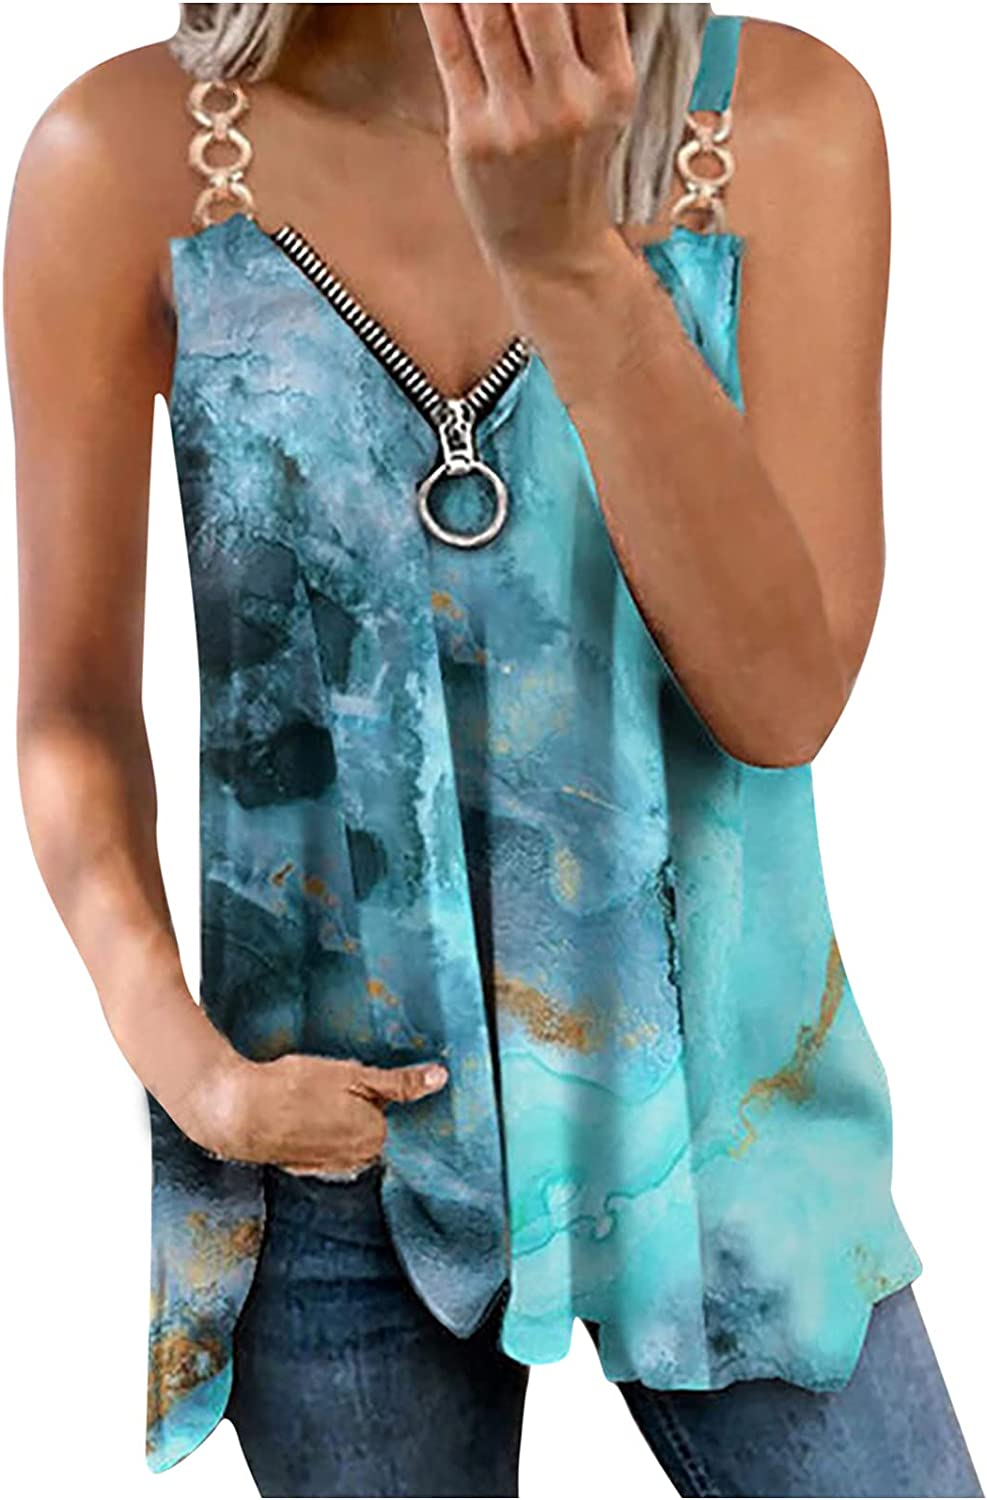 Juniors Women's Casual Sleeveless V-Neck Zipper Hollow Out Printing Vest Blouse Tops